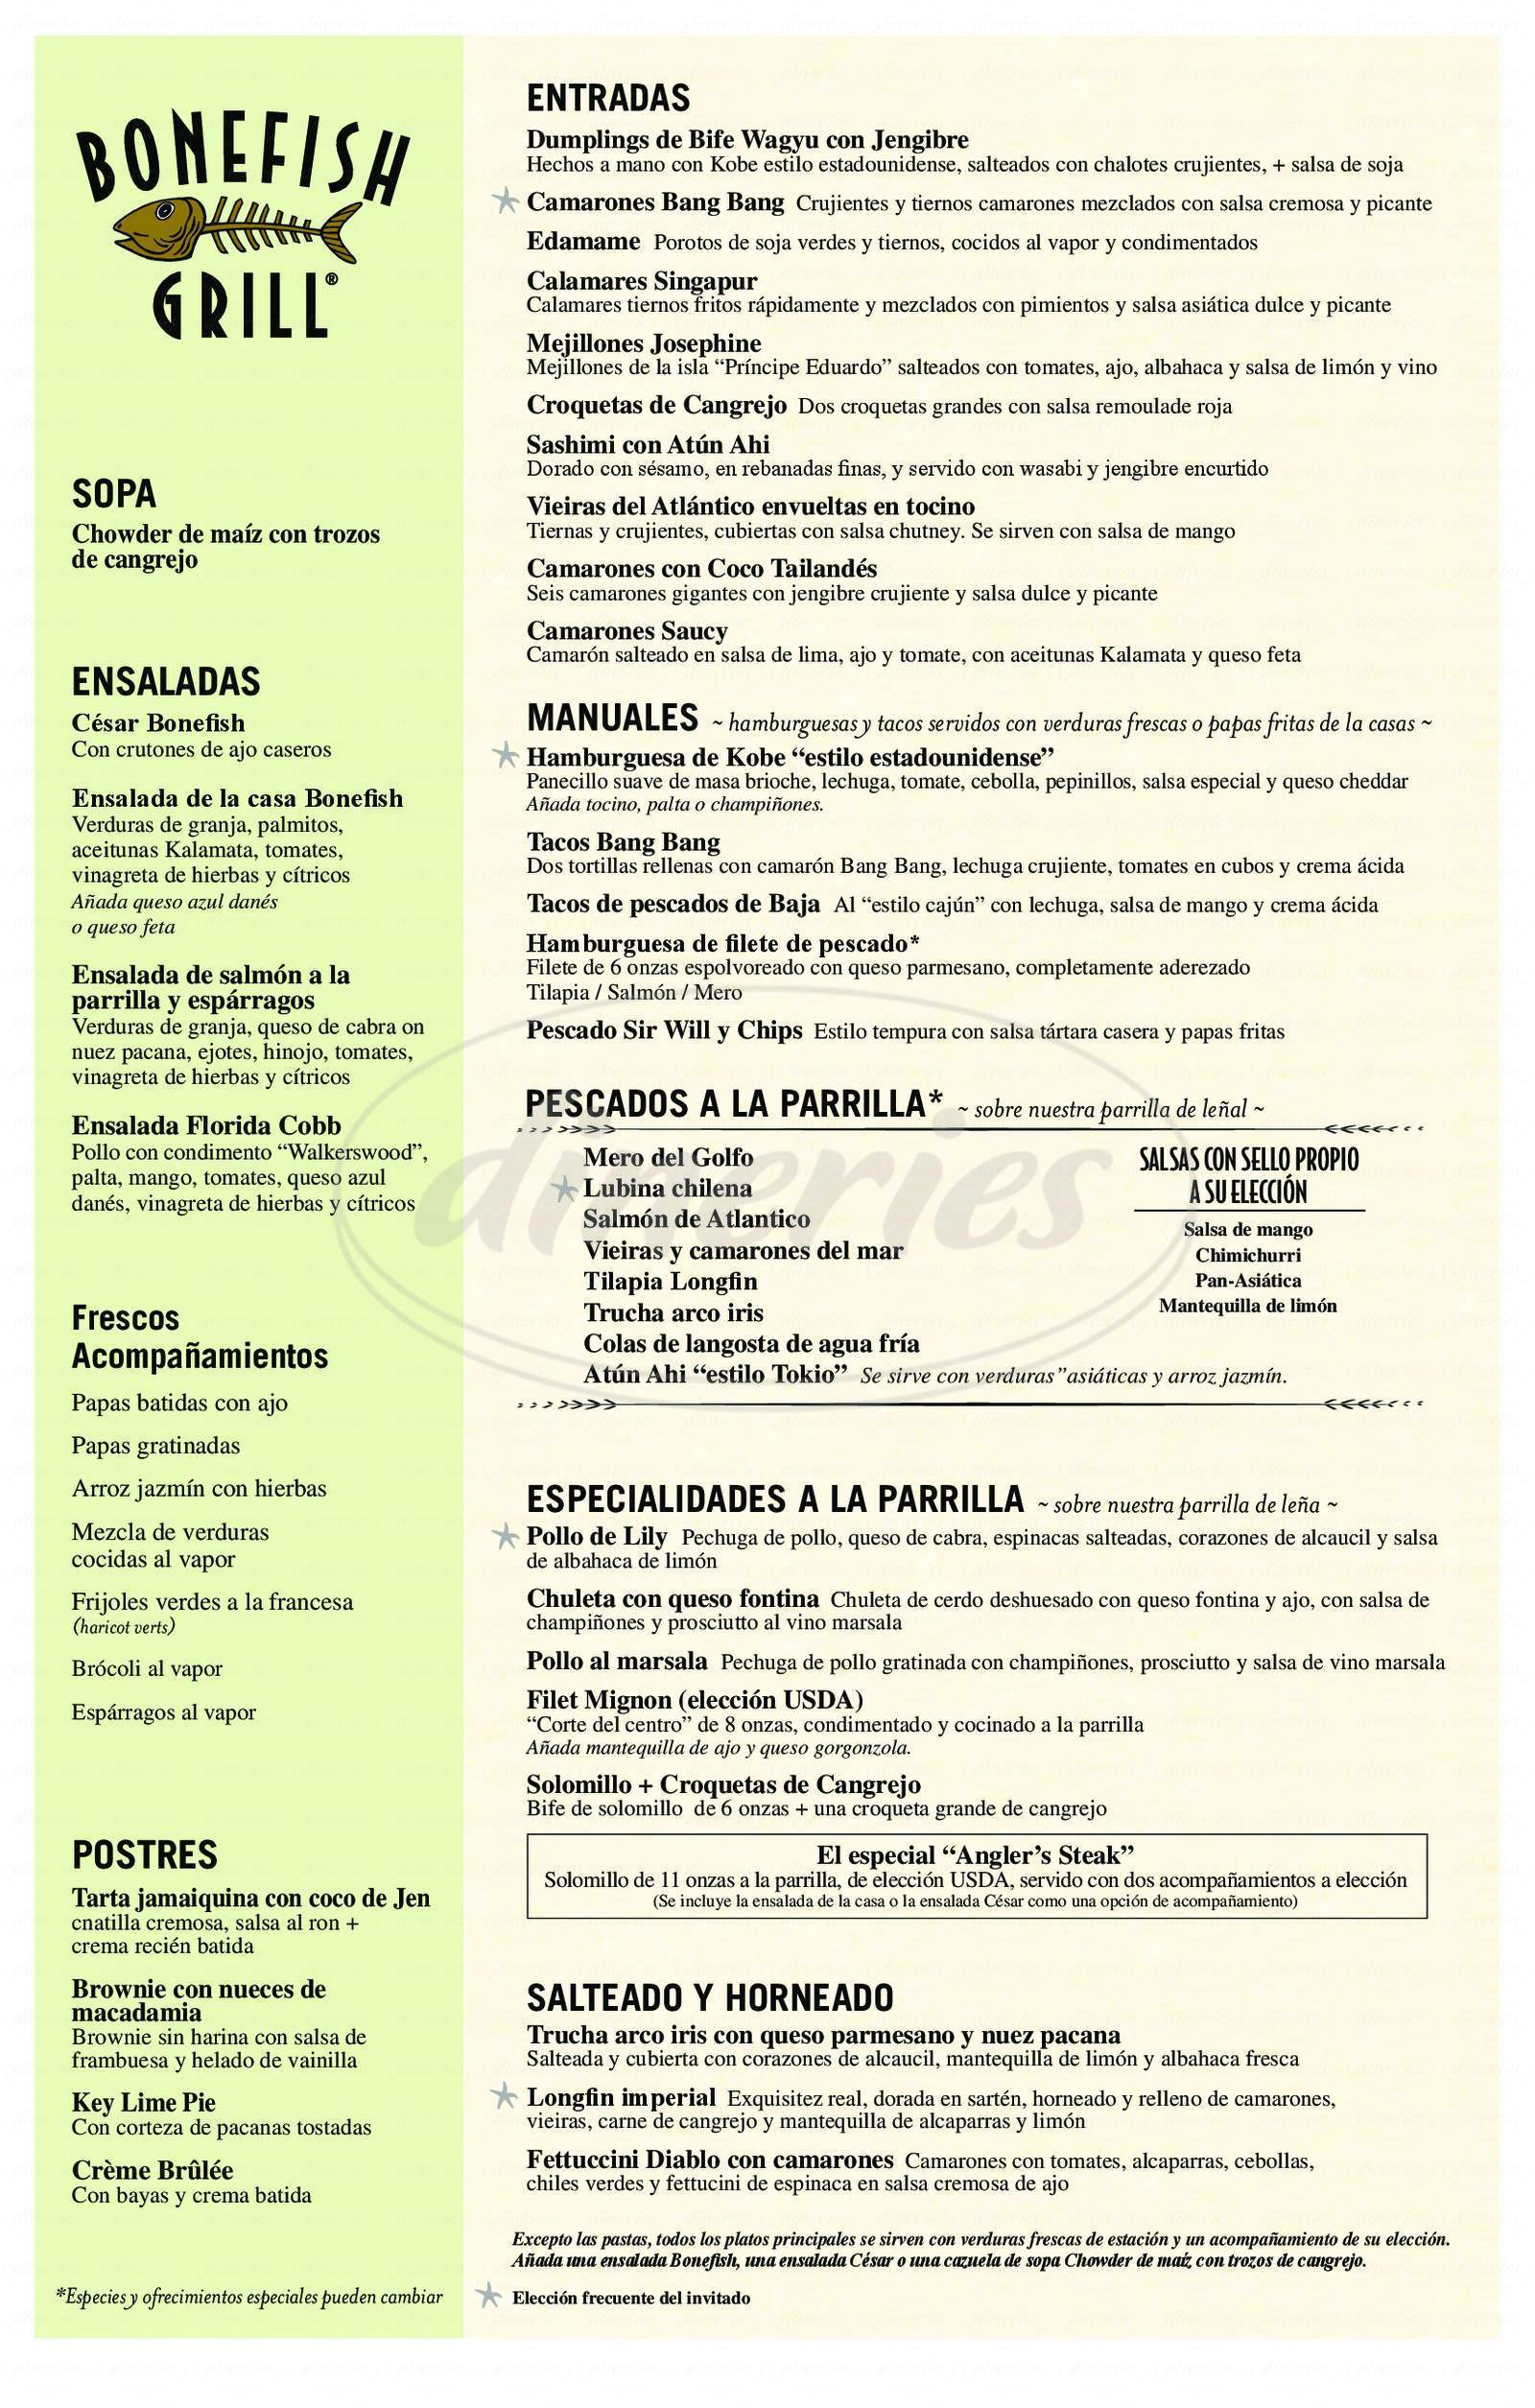 menu for Bonefish Grill